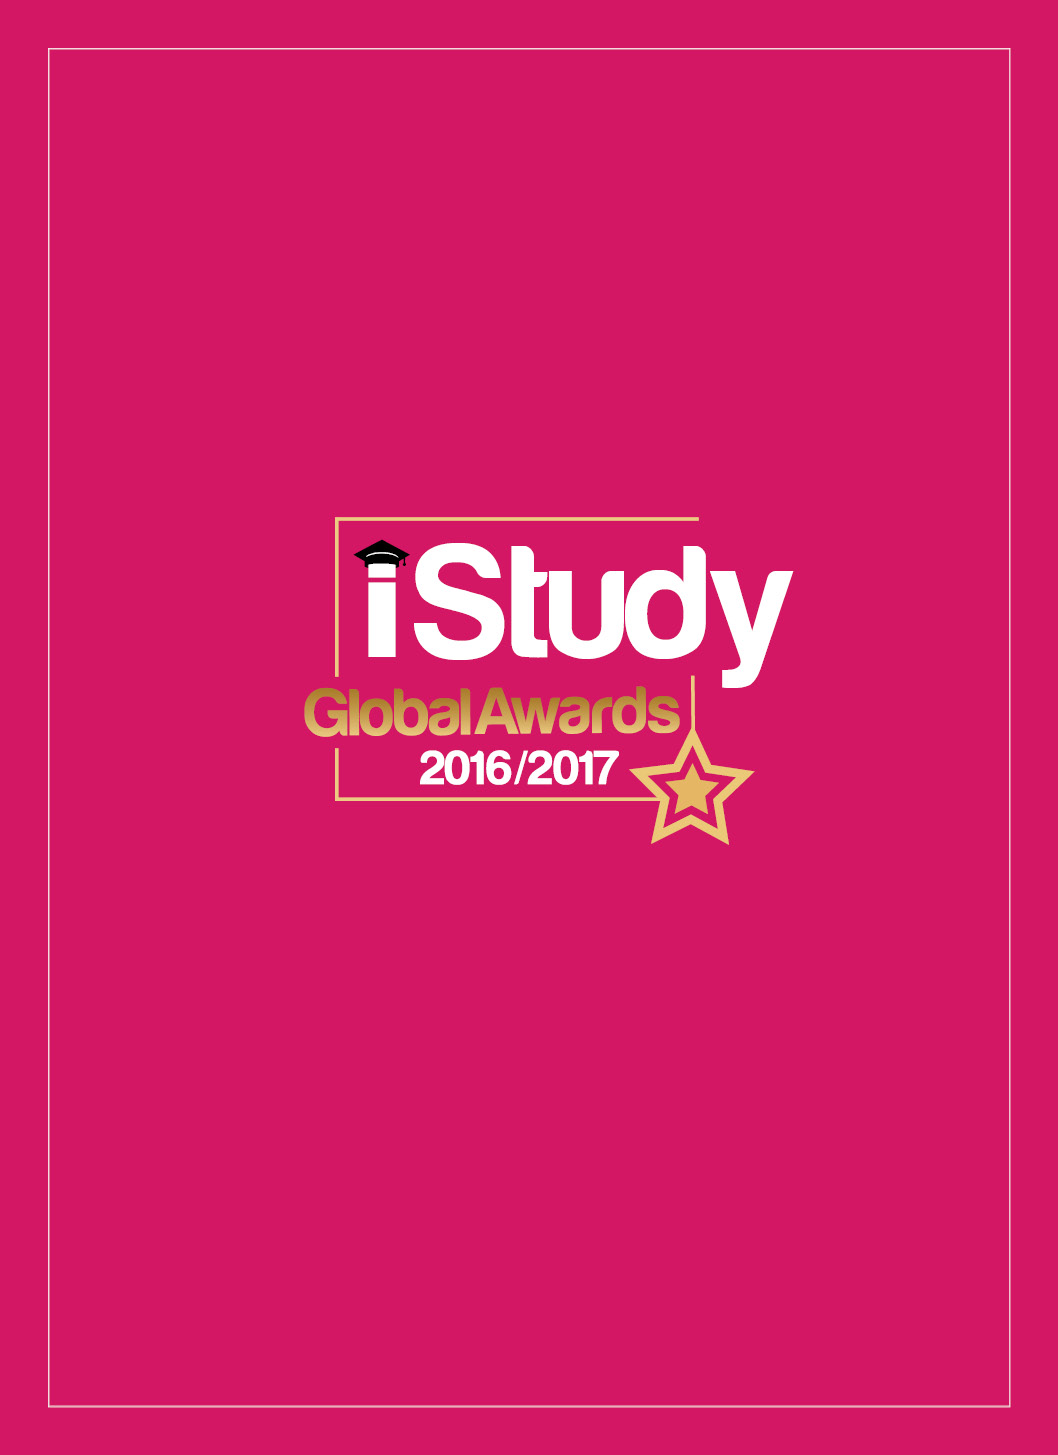 iStudy Global Awards 2016/2017 - Cover Image